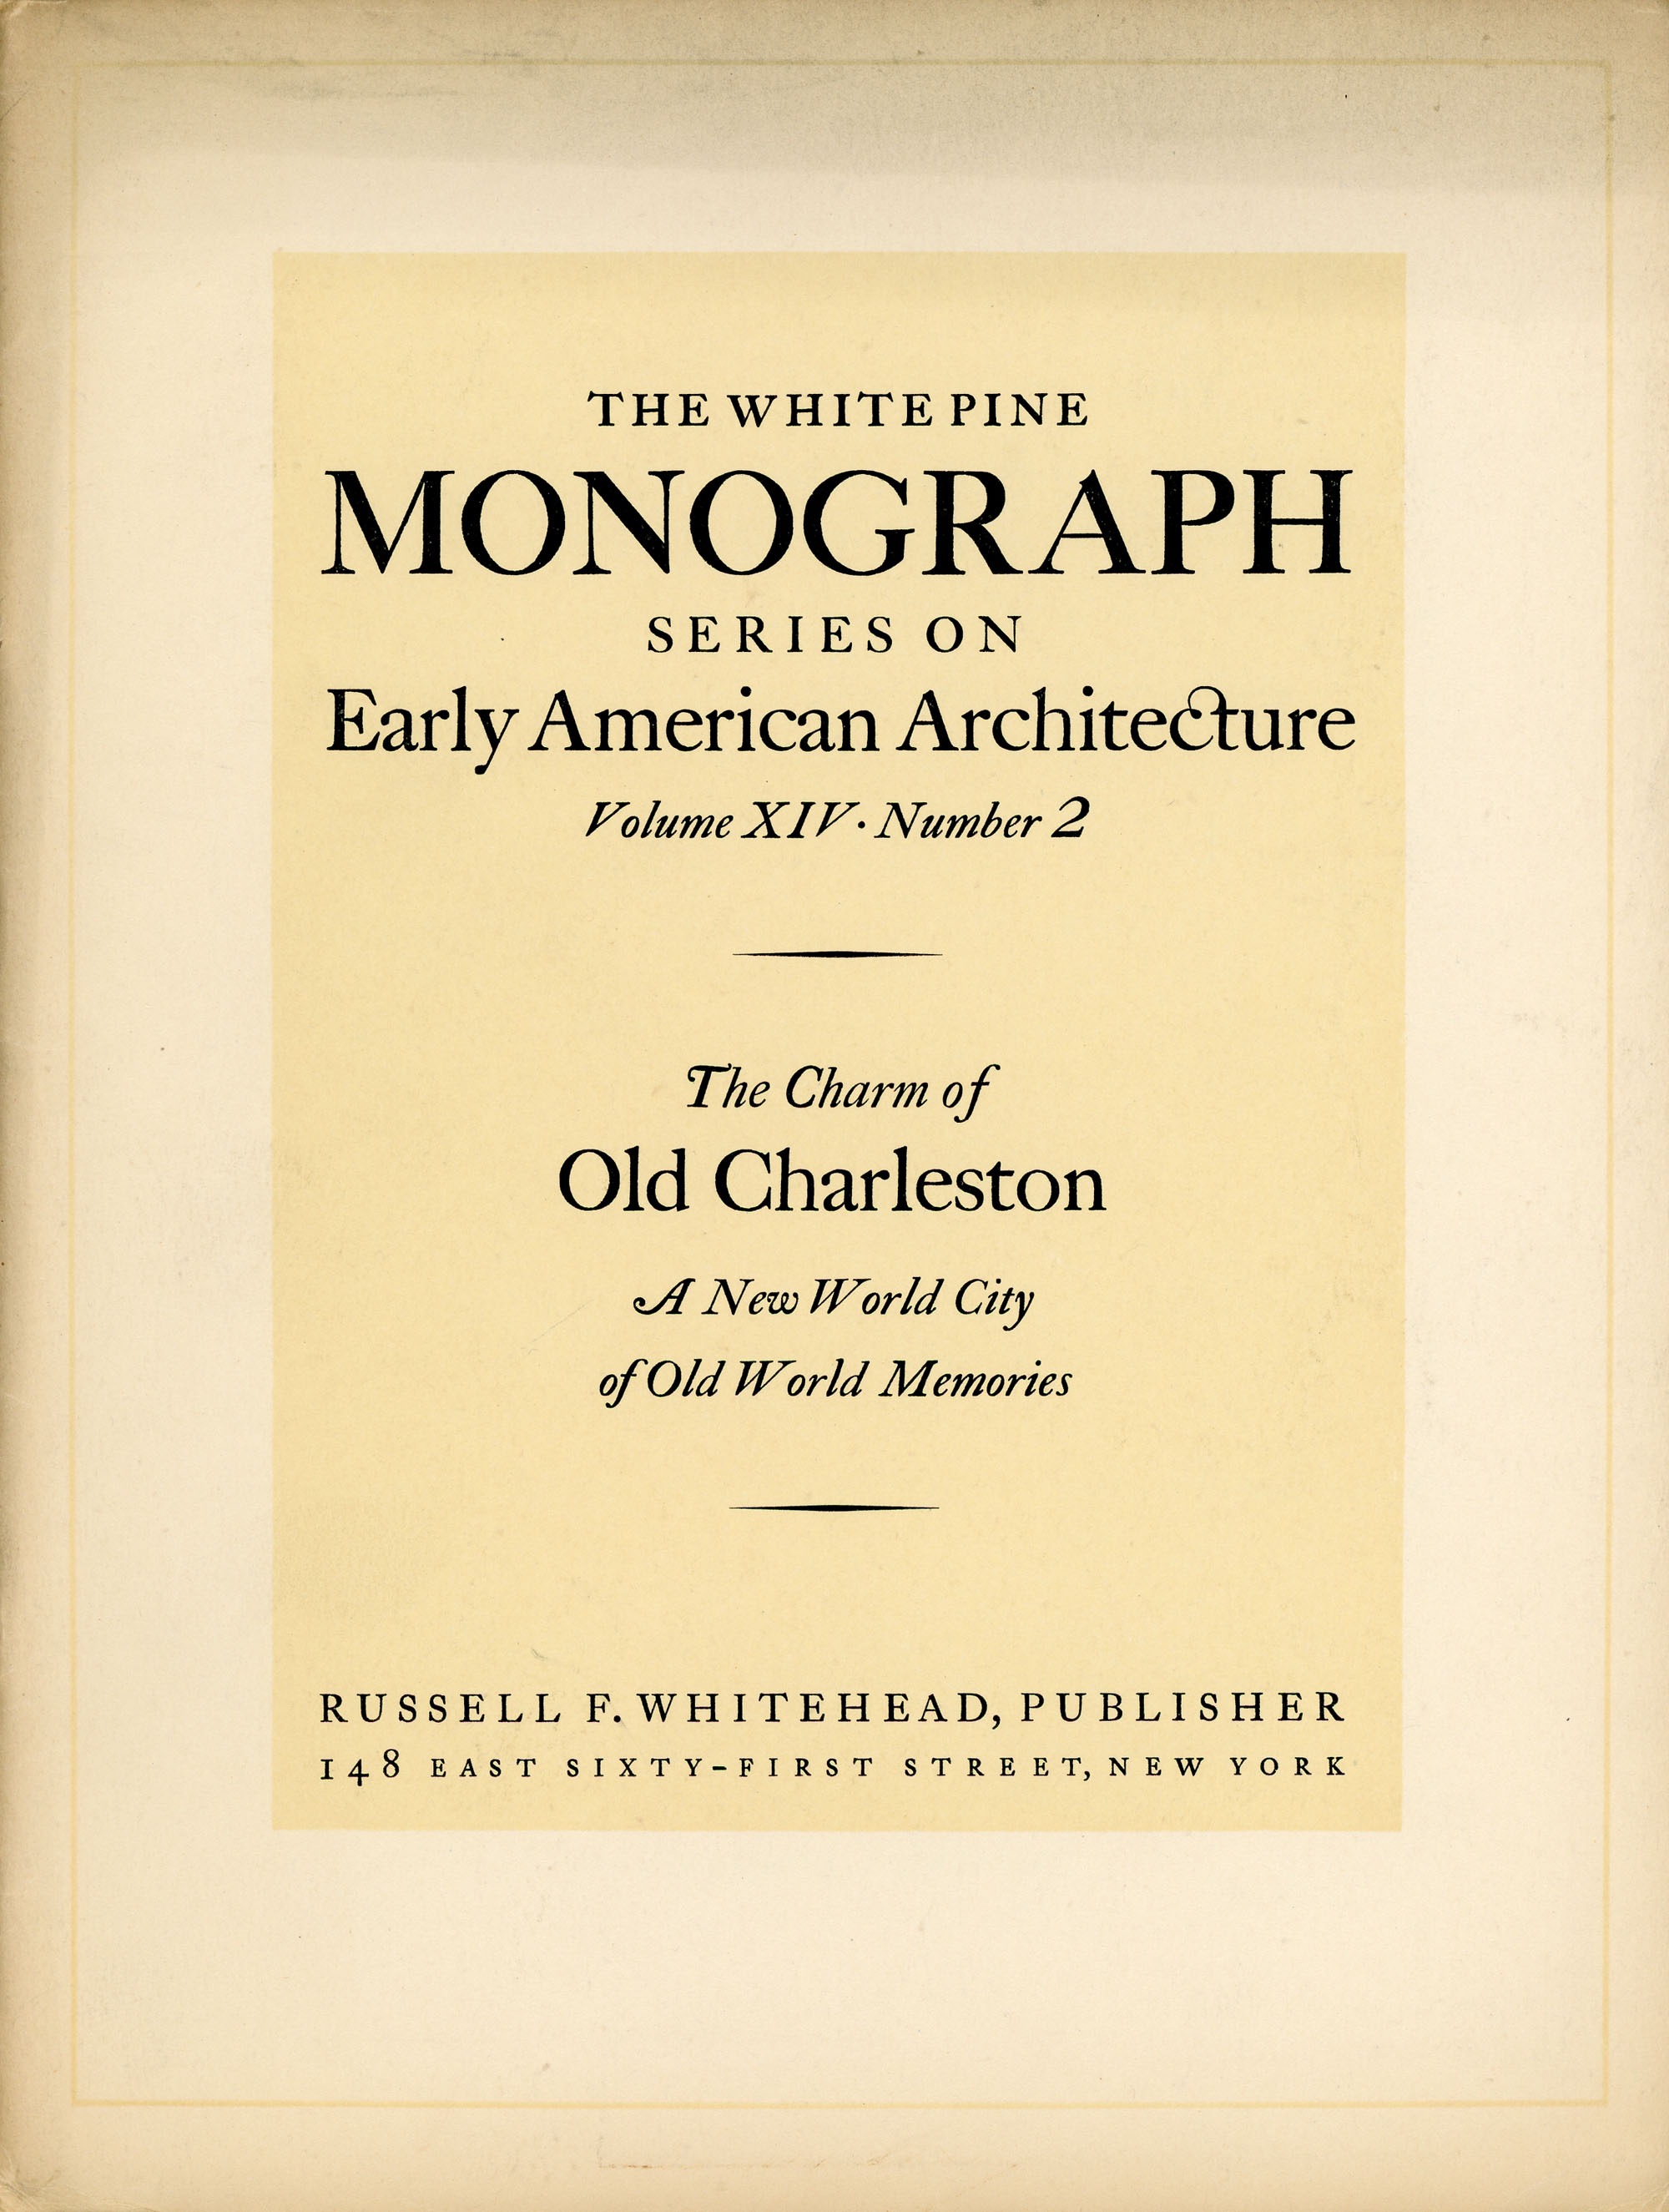 The Charm of Old Charleston: A New World City of Old World Memories (White Pine Series of Architectural Monographs, vol. 14, no. 2)